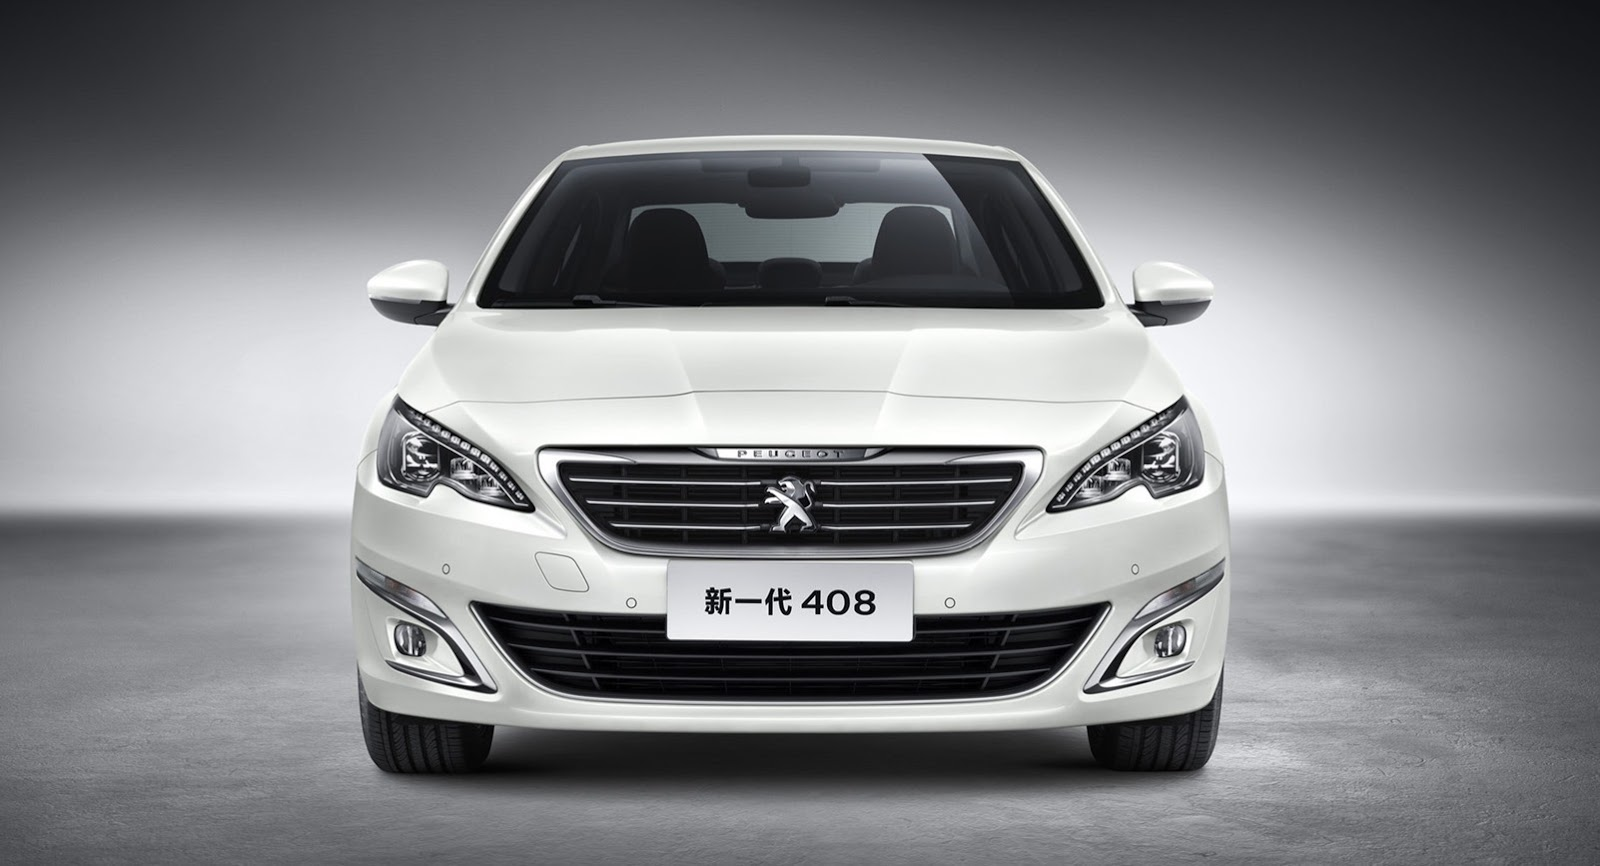 All-New Peugeot 408 Sedan Revealed in China, Is a Longer 308 With a Boot - autoevolution